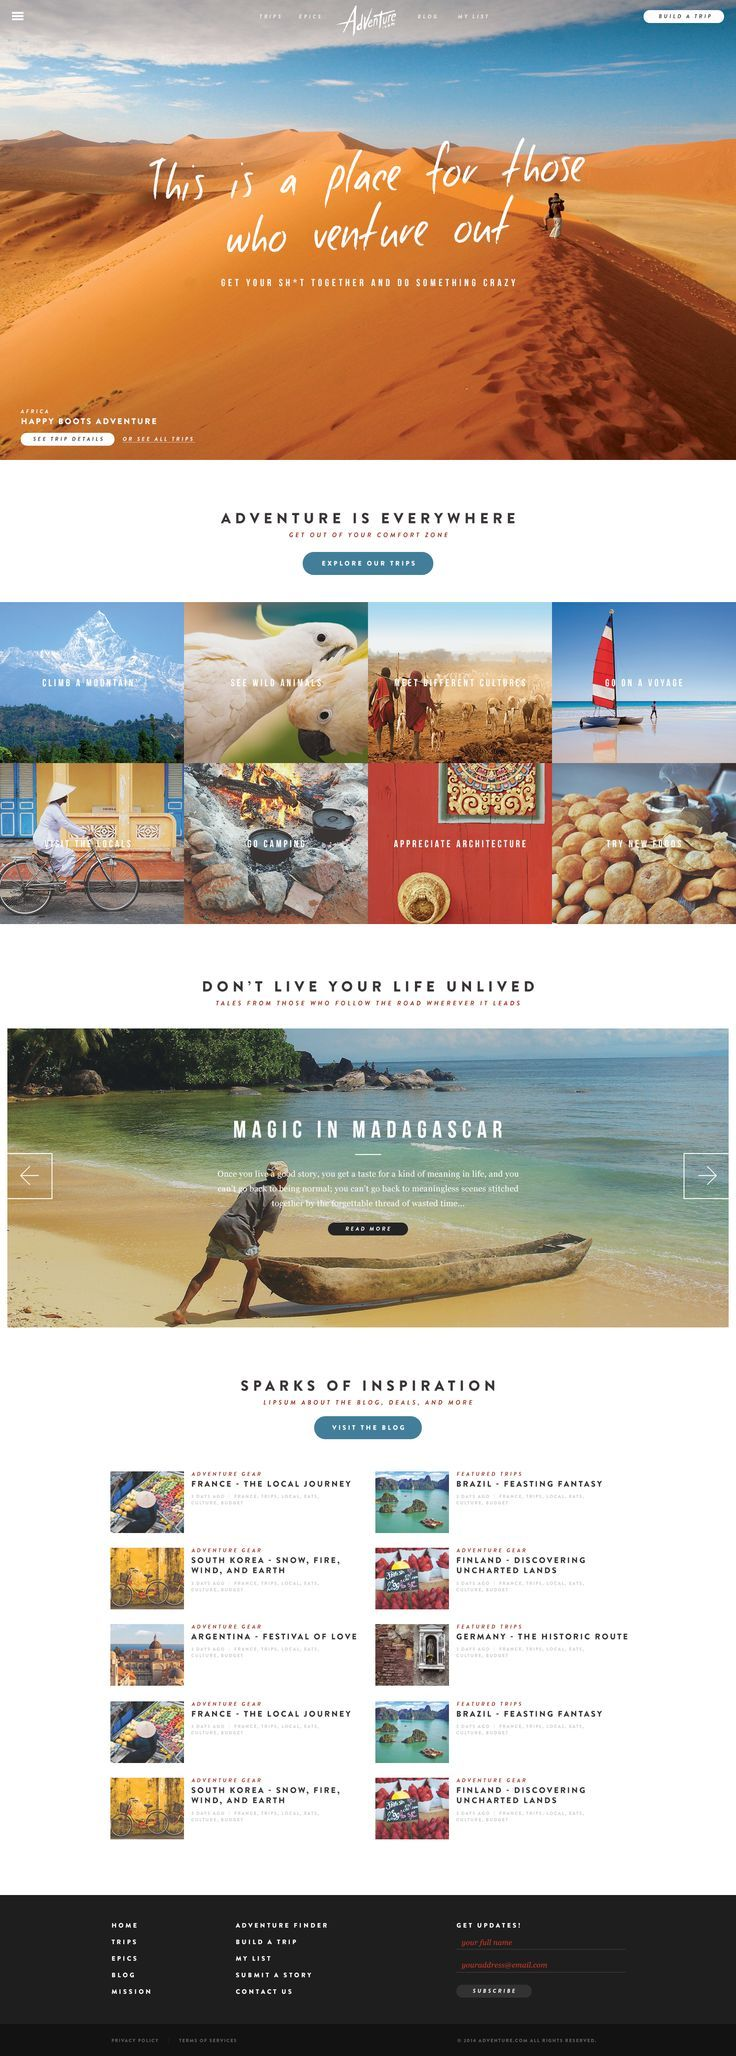 Inspiring branding for a travel brand. Nice and organized.